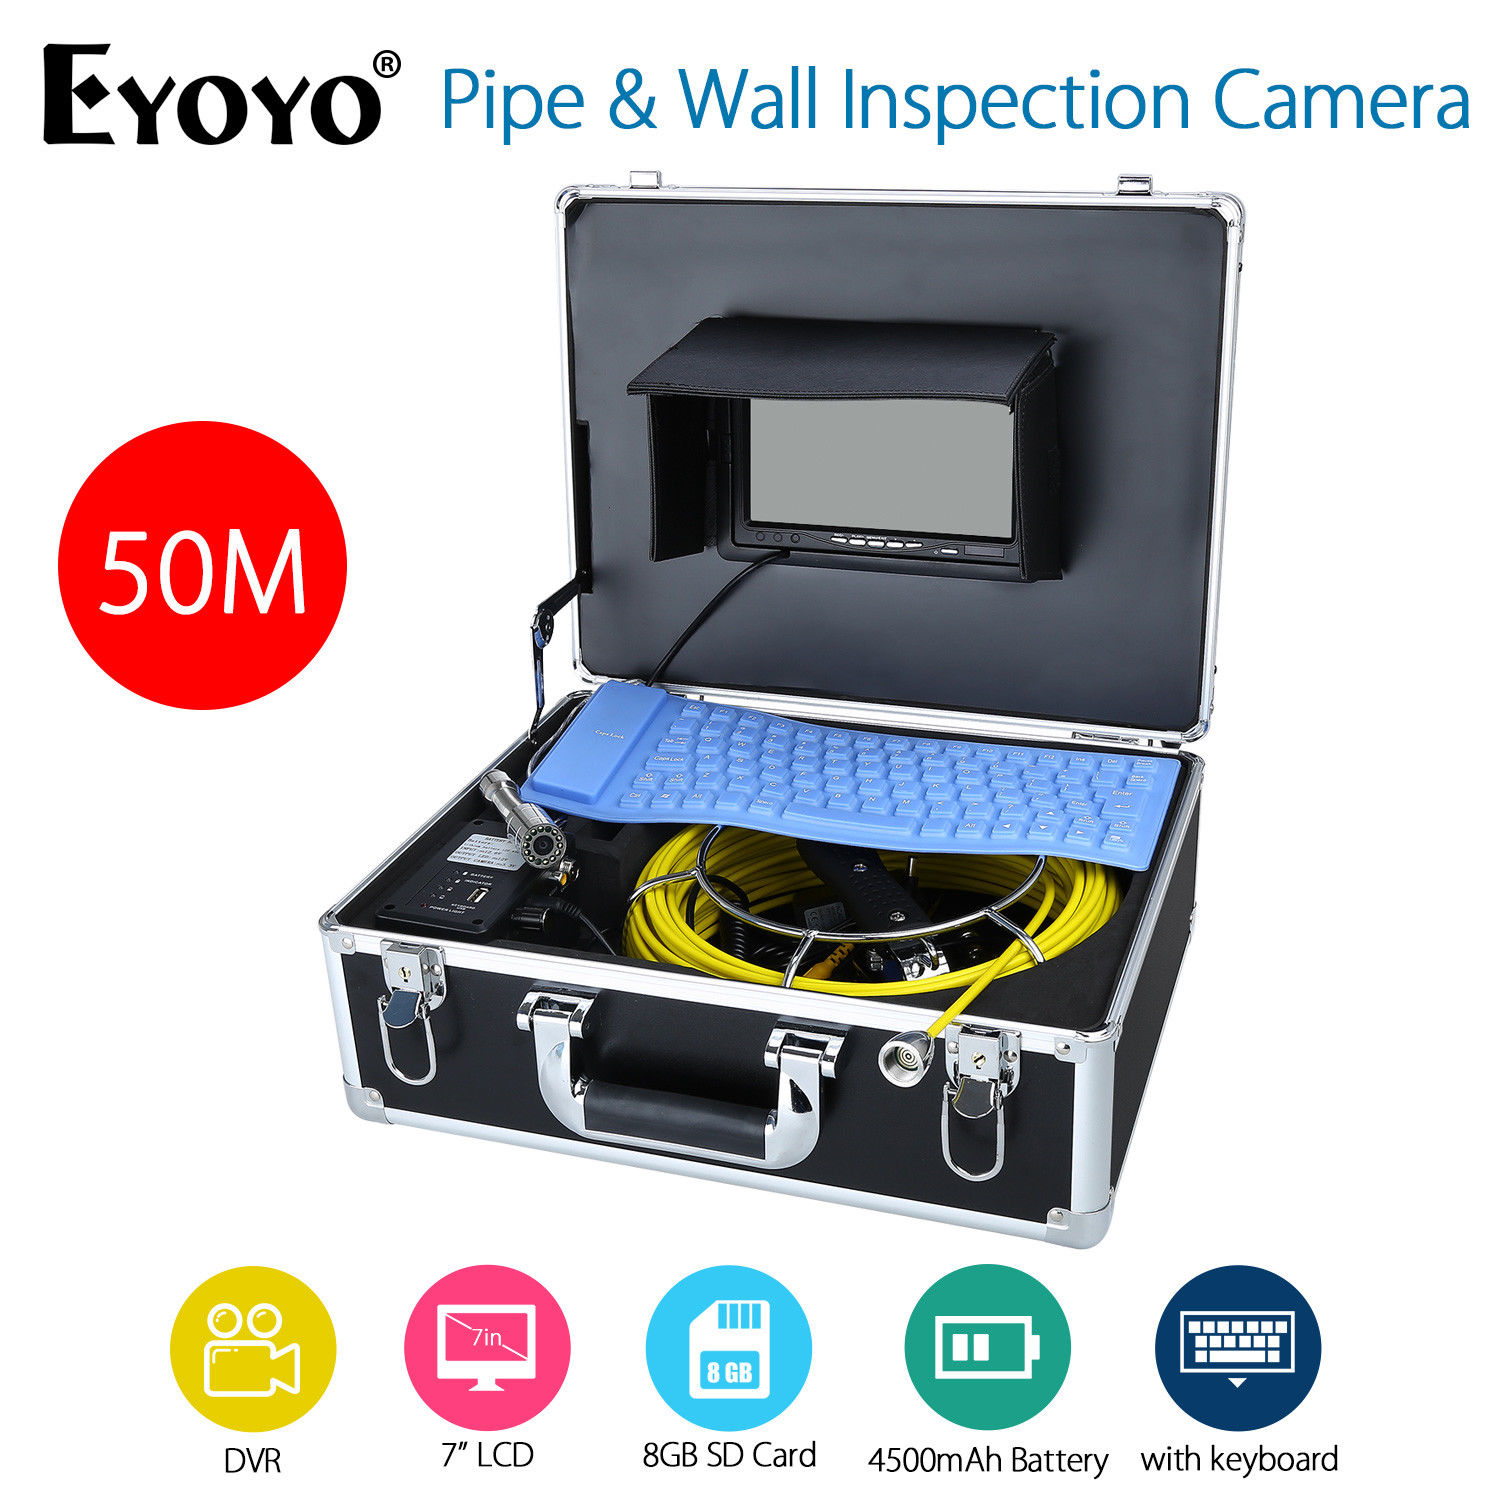 Eyoyo 50M 7 LCD Pipe Wall Inspection Camera HD 1000TVL DVR Endoscope Snake Sewer Cam Video Recording With Portable Keyboard eyoyo 30m 7 lcd monitor pipe wall video inspection sewer drain camera pipeline snake cam dvr 6600mah battery with usb port